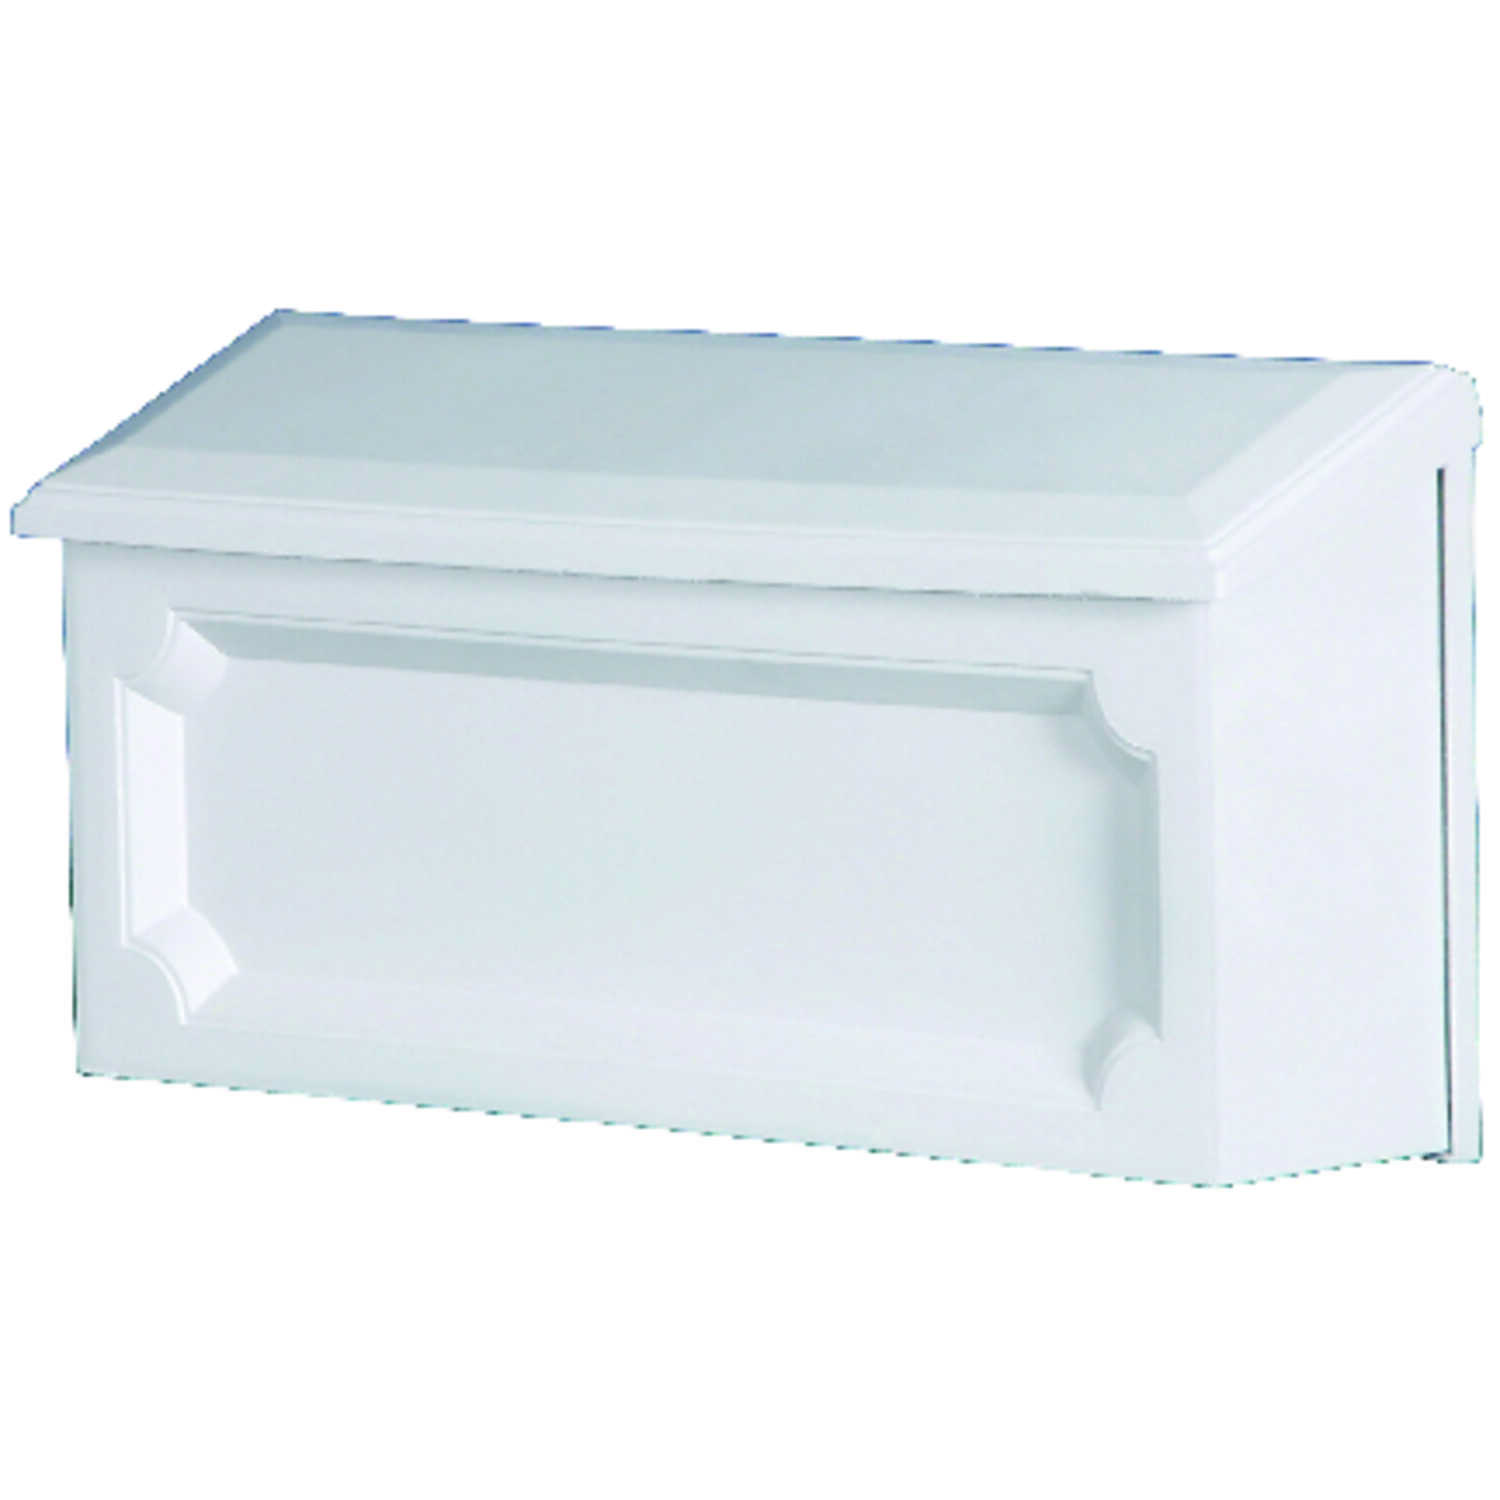 Gibraltar  Windsor  Wall-Mounted  7-1/4 in. H x 7-1/4 in. H x 15 in. W x 4 in. L Plastic  Mailbox  W